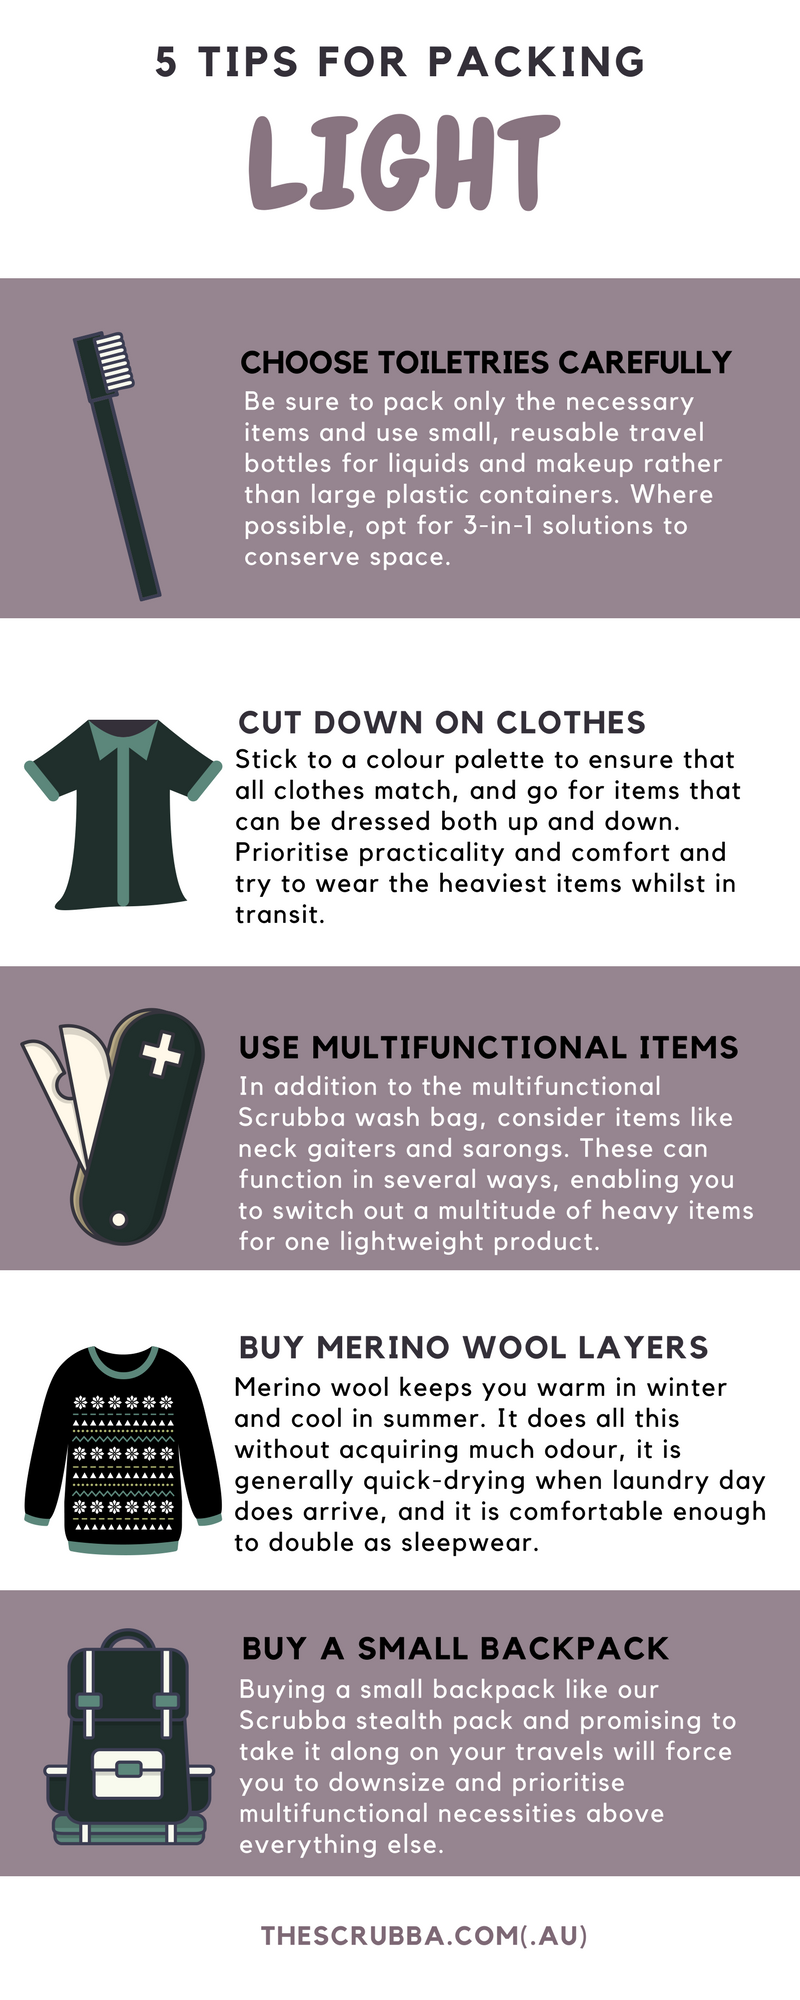 5 Tips For Packing Light Infographic Images